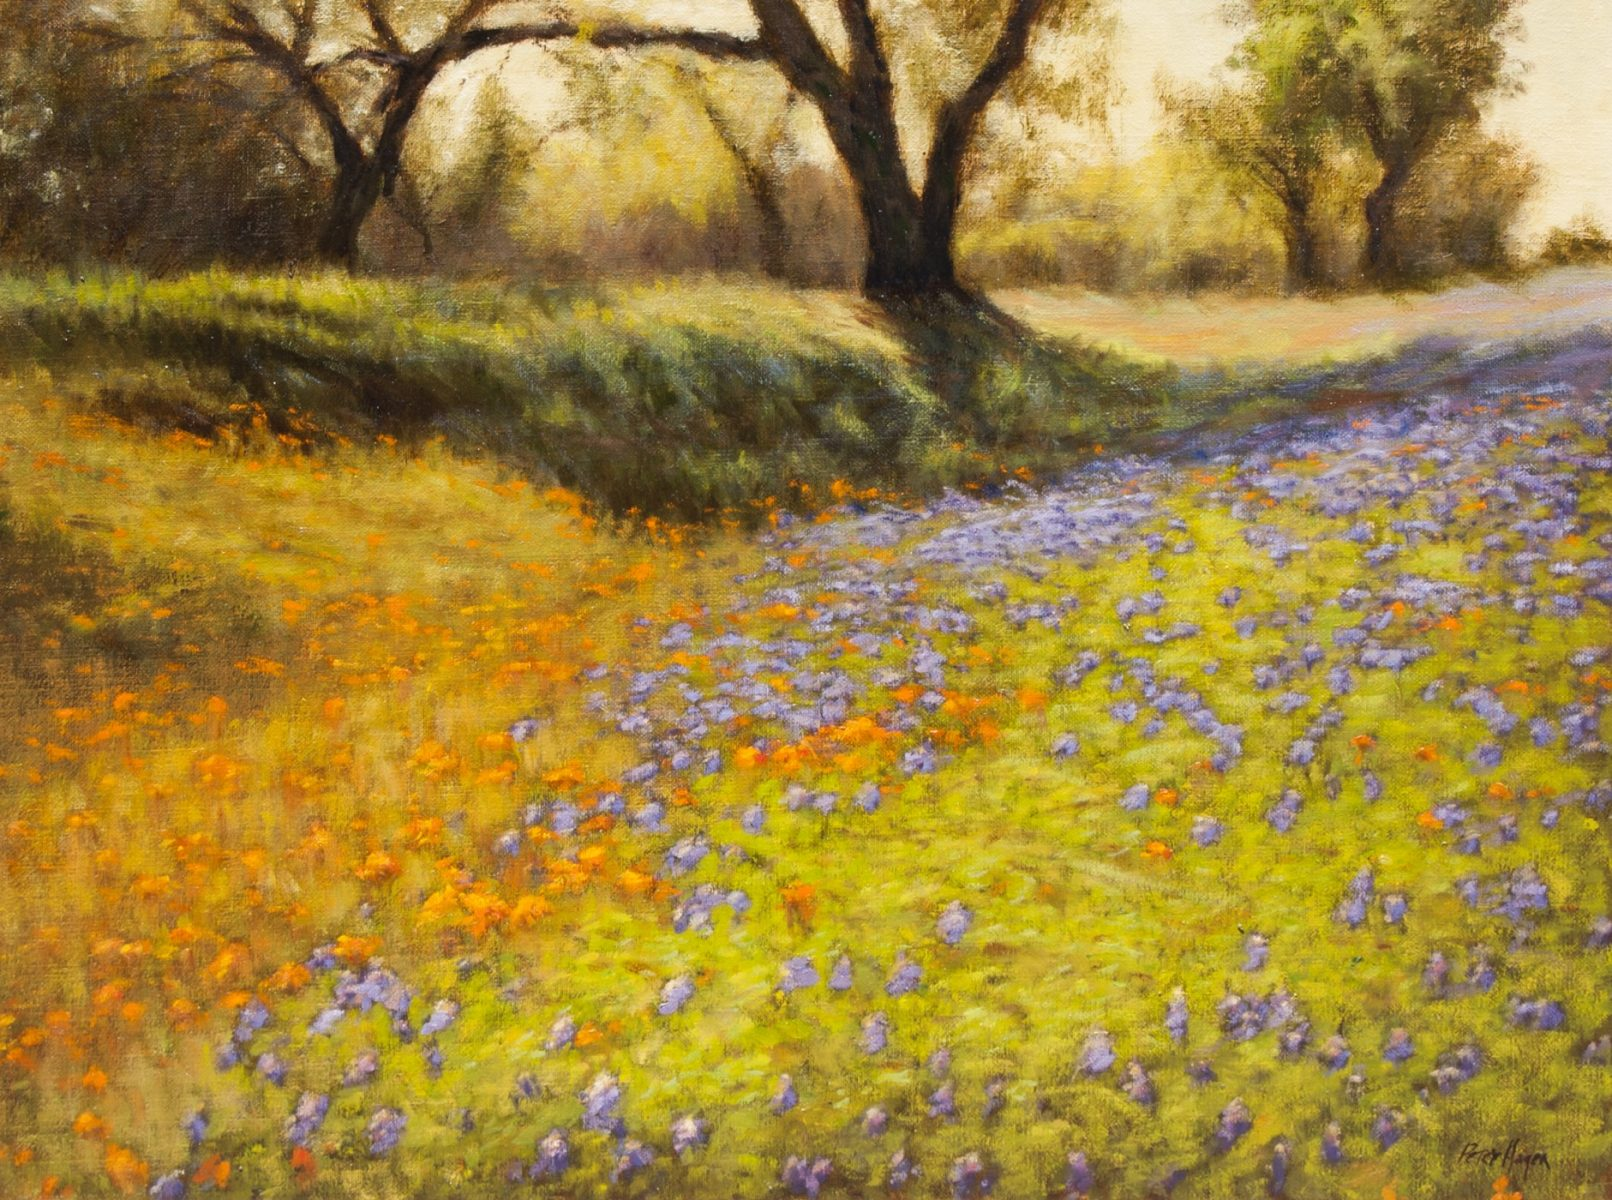 Painting of the Texas Hill Country by Peter Hagen